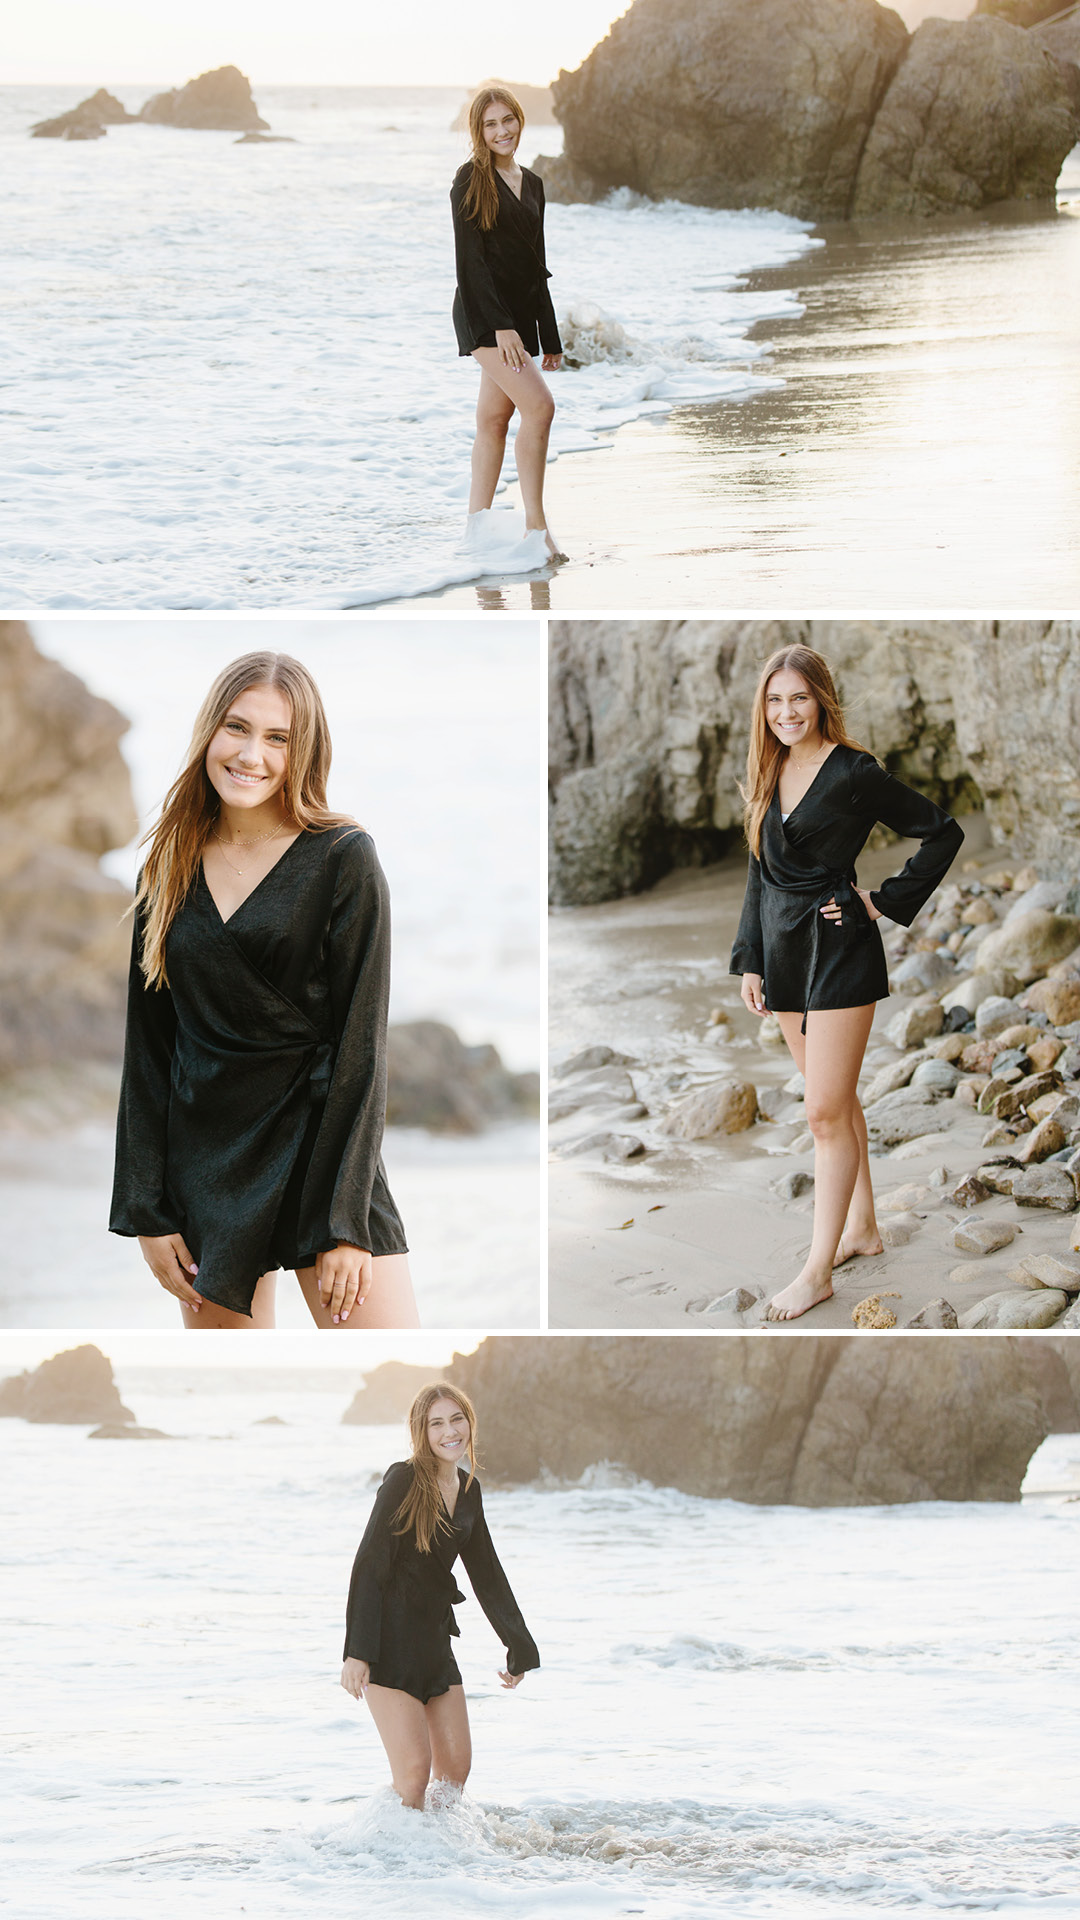 Westlake village senior photographer